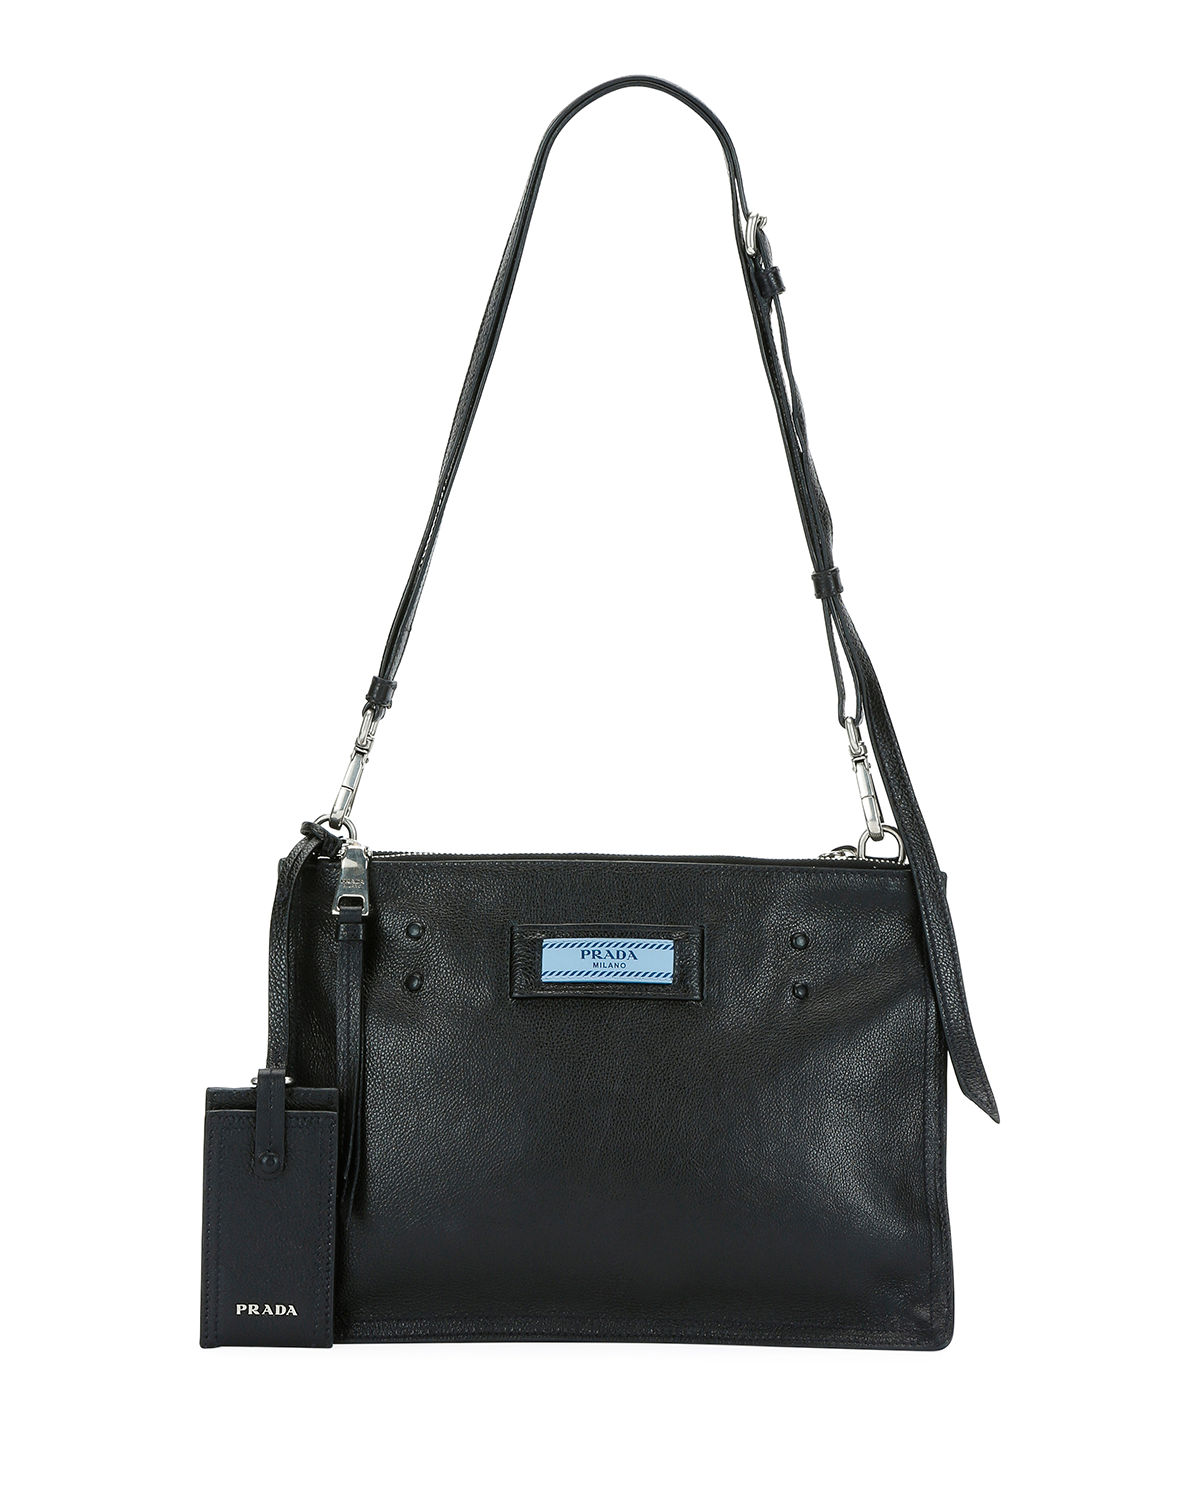 0e03cca1e4b55c Prada Etiquette Bag Sale | Stanford Center for Opportunity Policy in ...